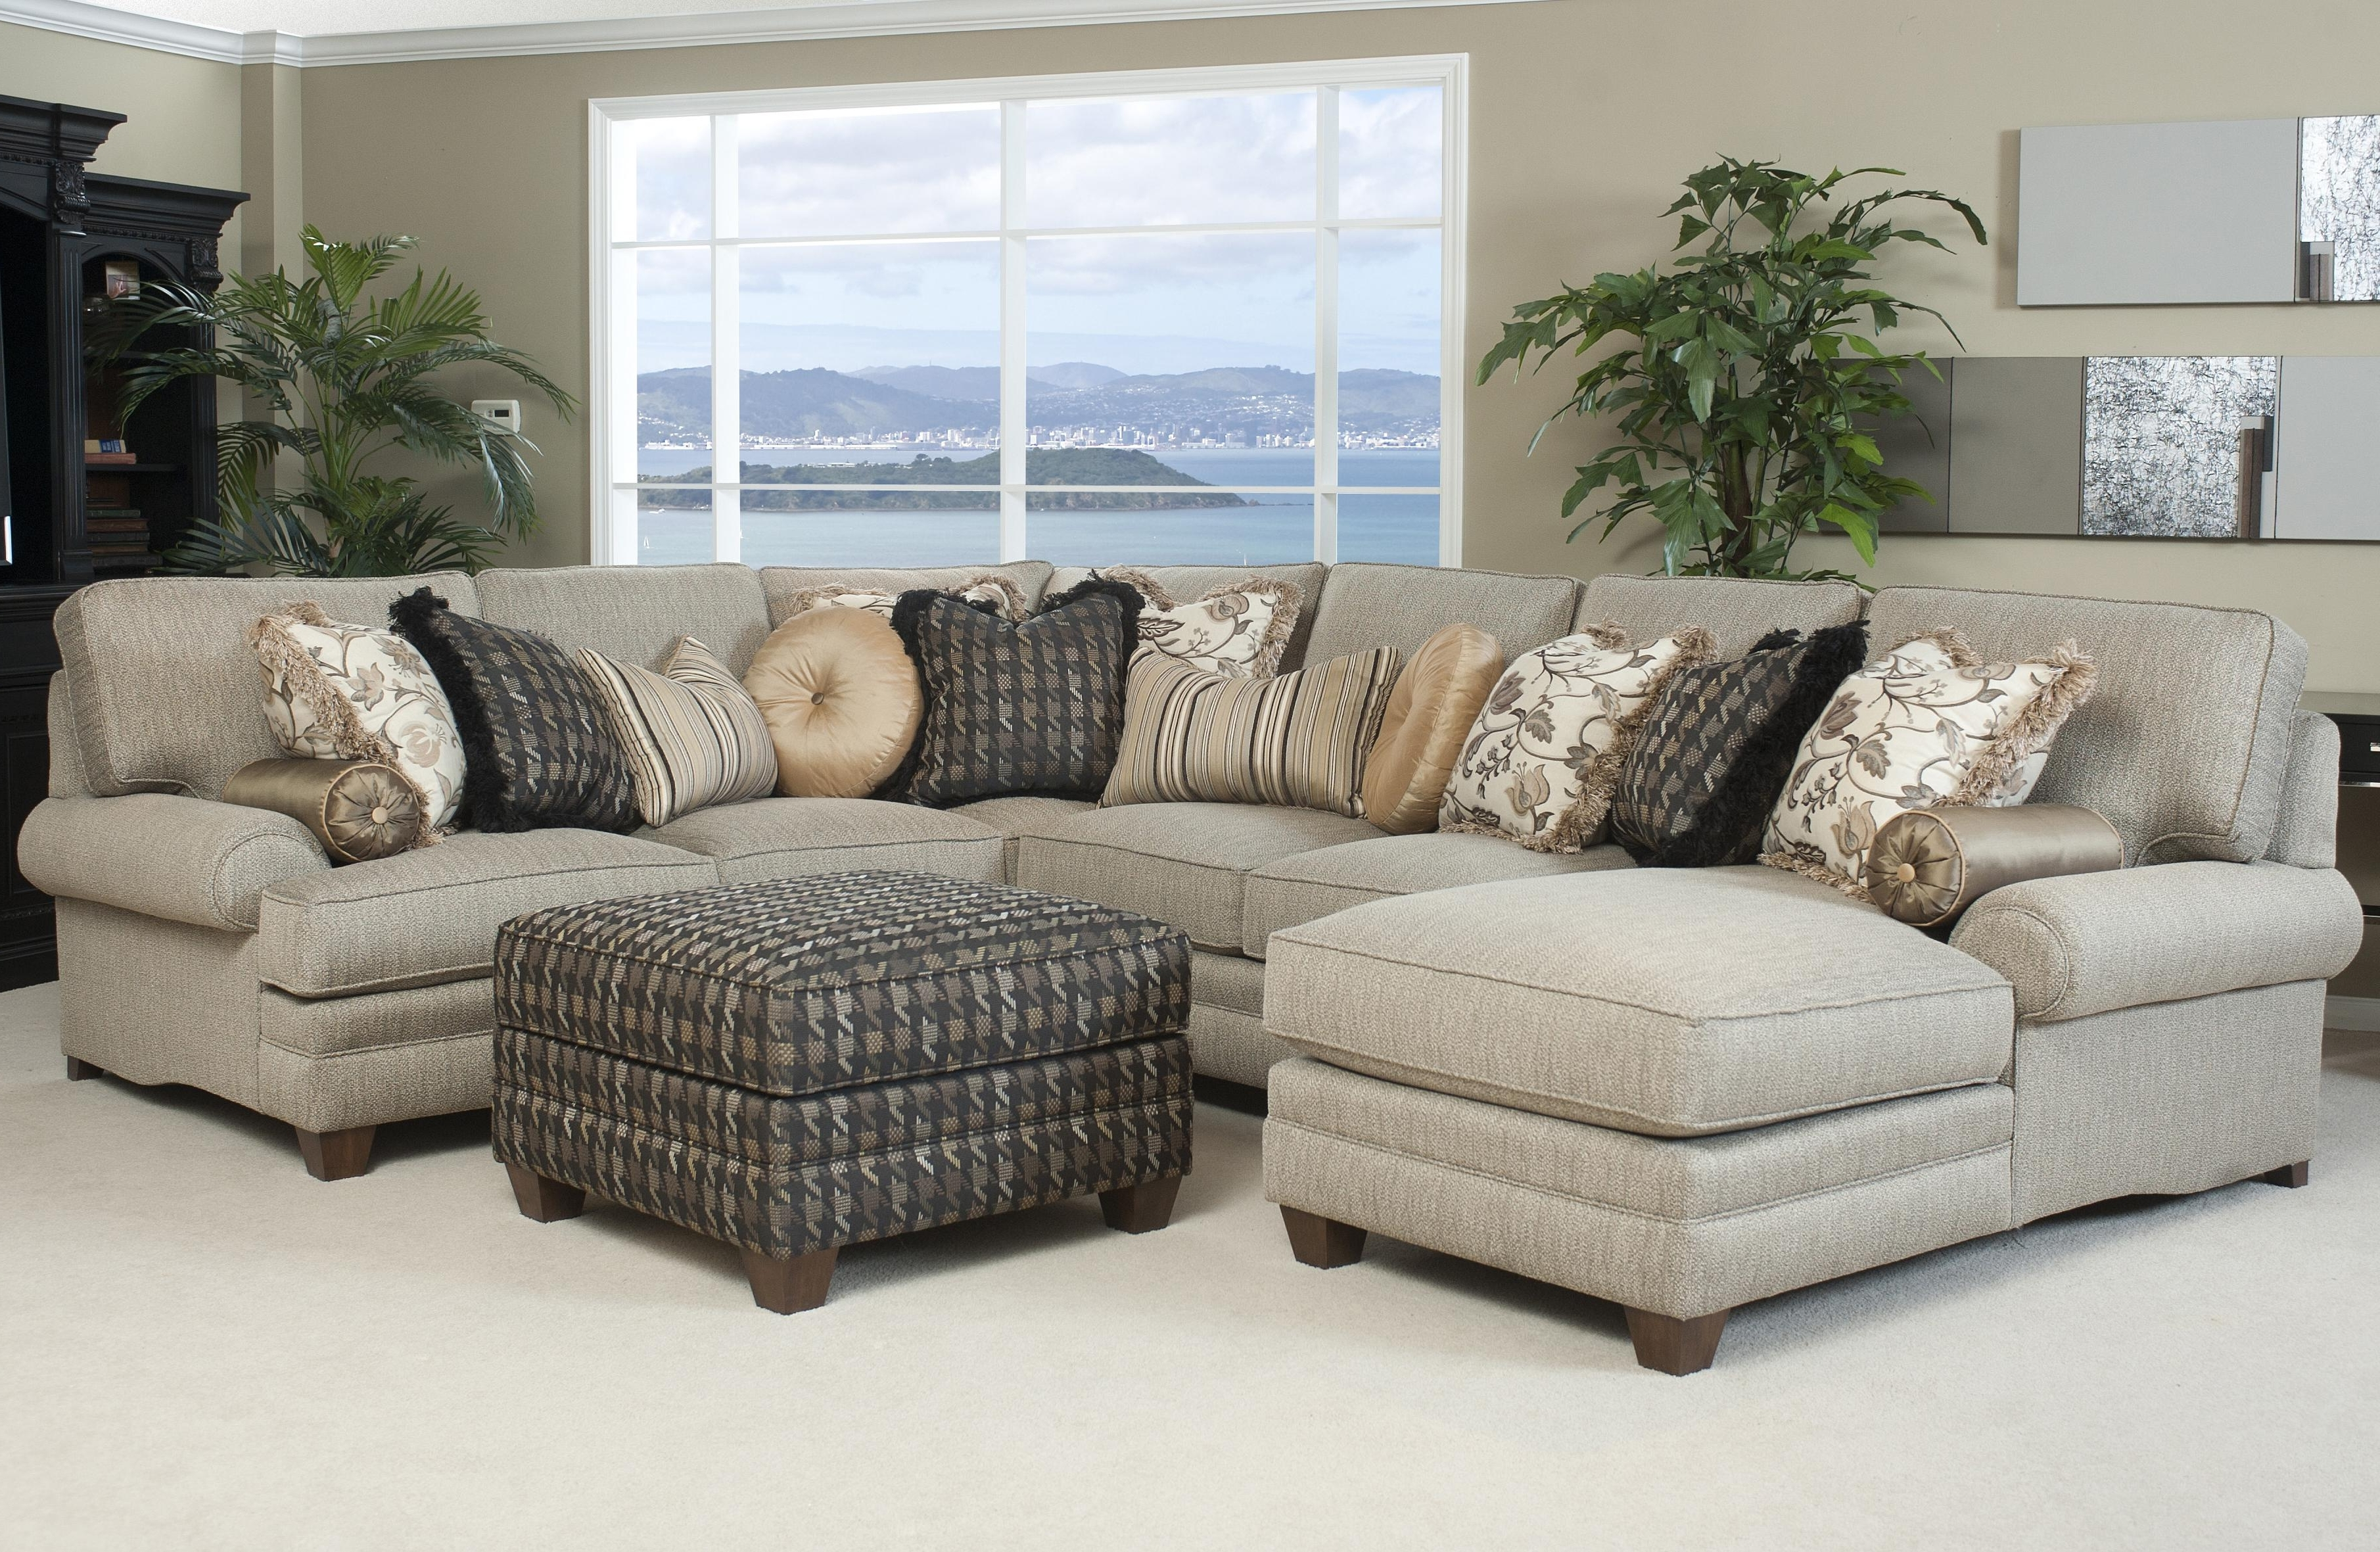 Grey Sectionals Microfiber Small Inspirations With Sectional Sofa Inside Fashionable Cozy Sectional Sofas (Gallery 6 of 15)